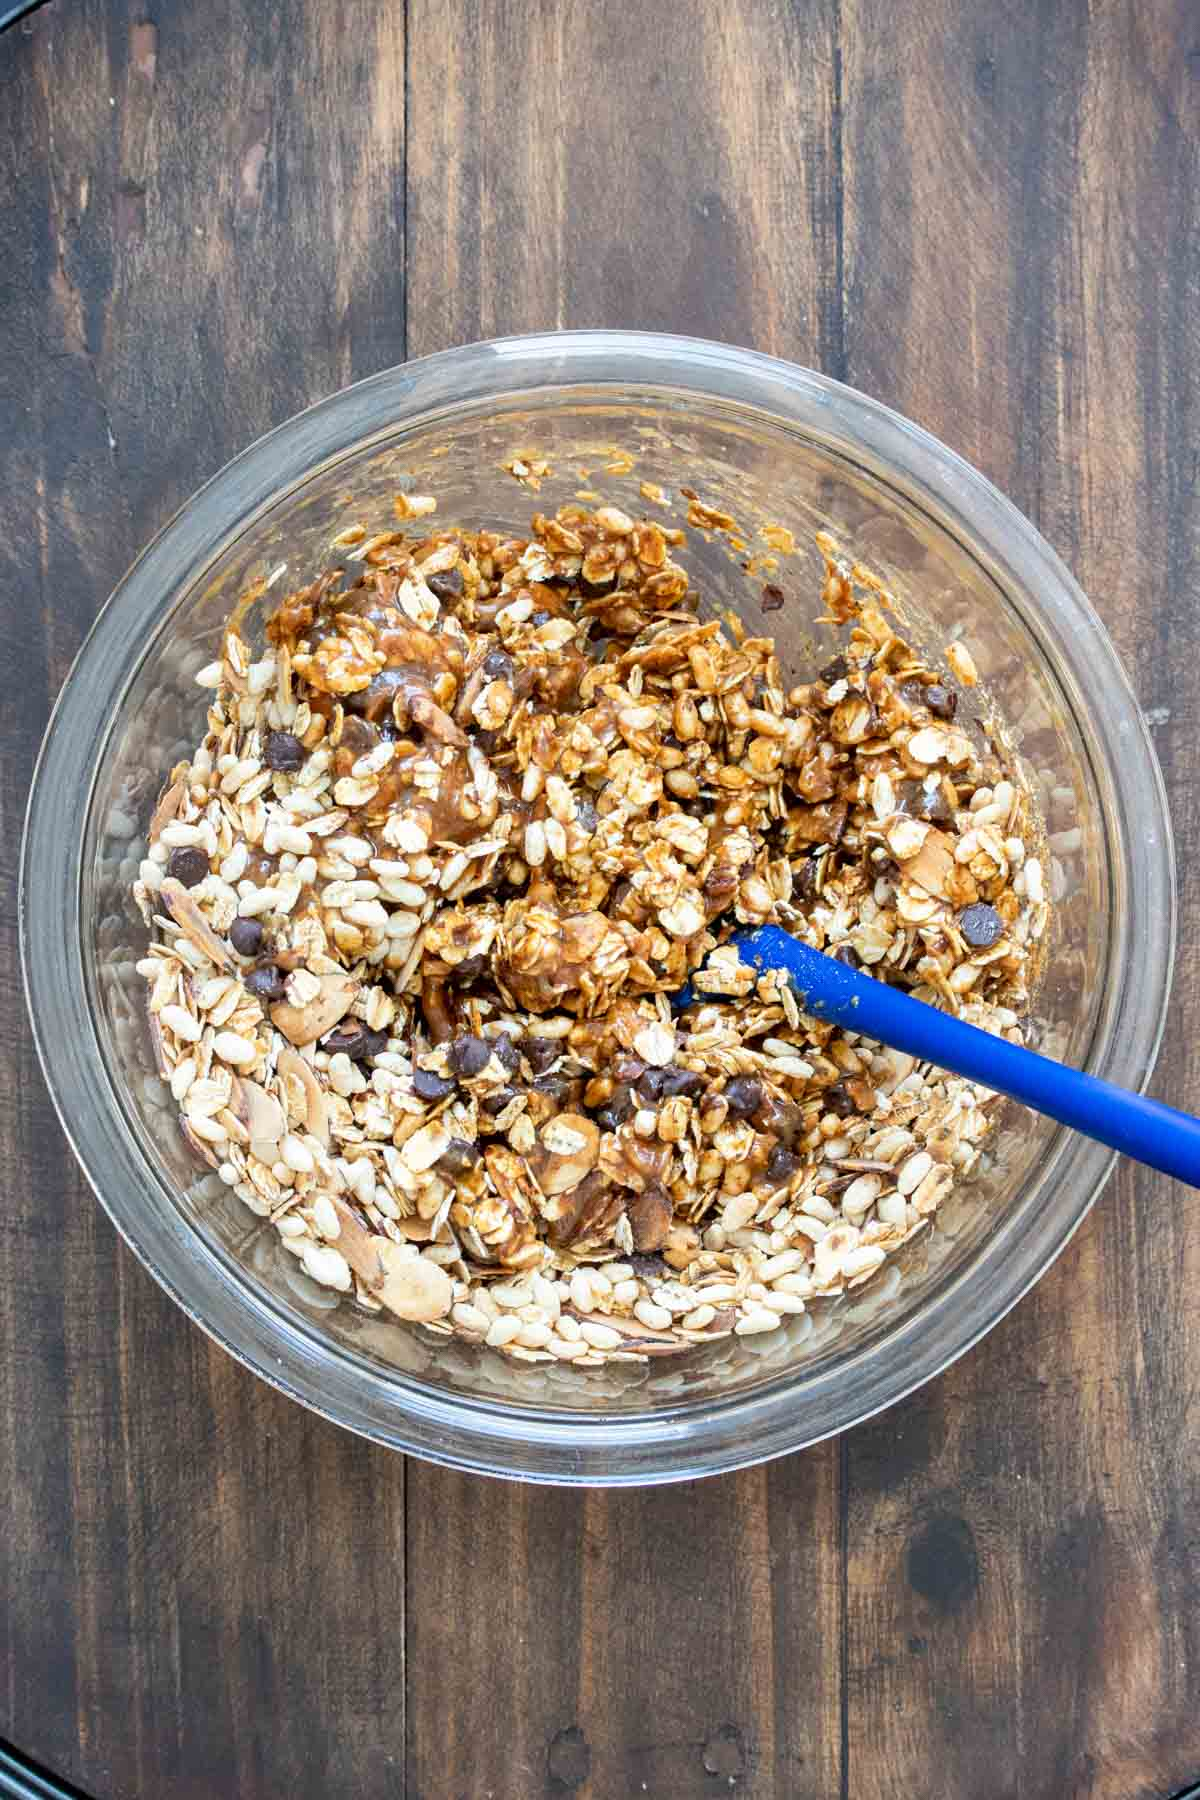 Spatula mixing oats and a brown sticky mixture in a bowl